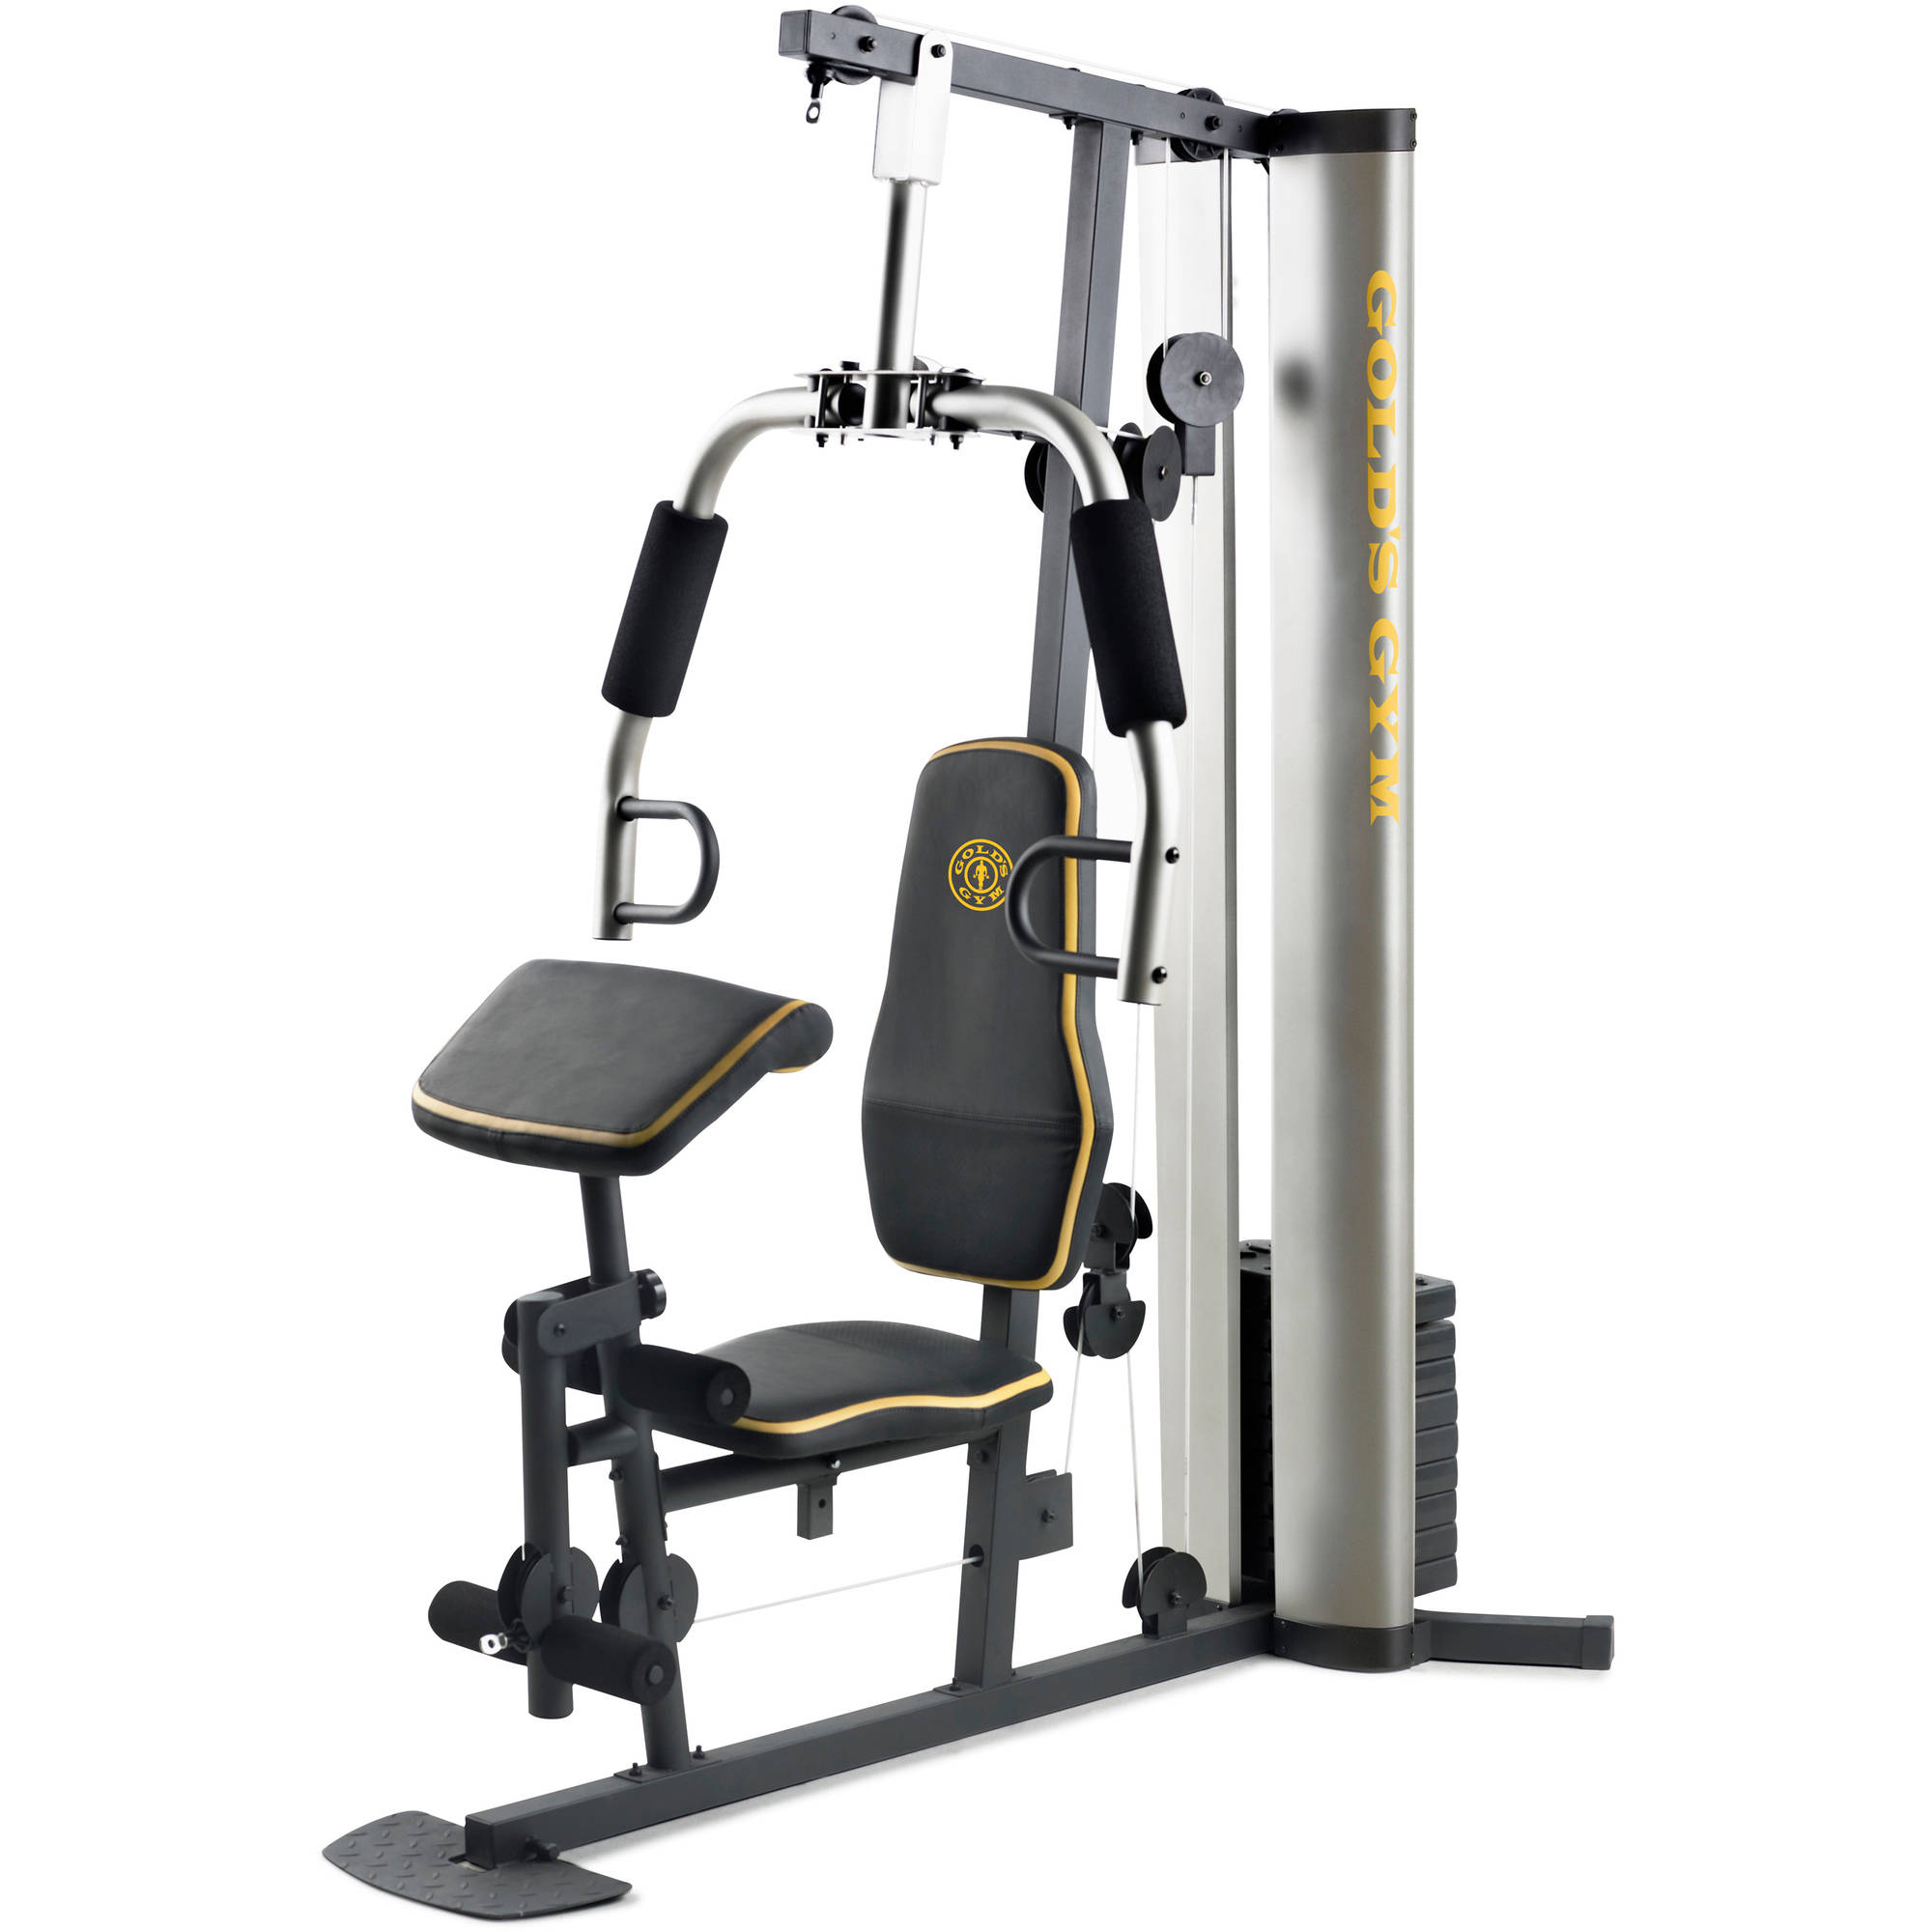 Gold's Gym XR 55 Home Gym, Box 1 of 2